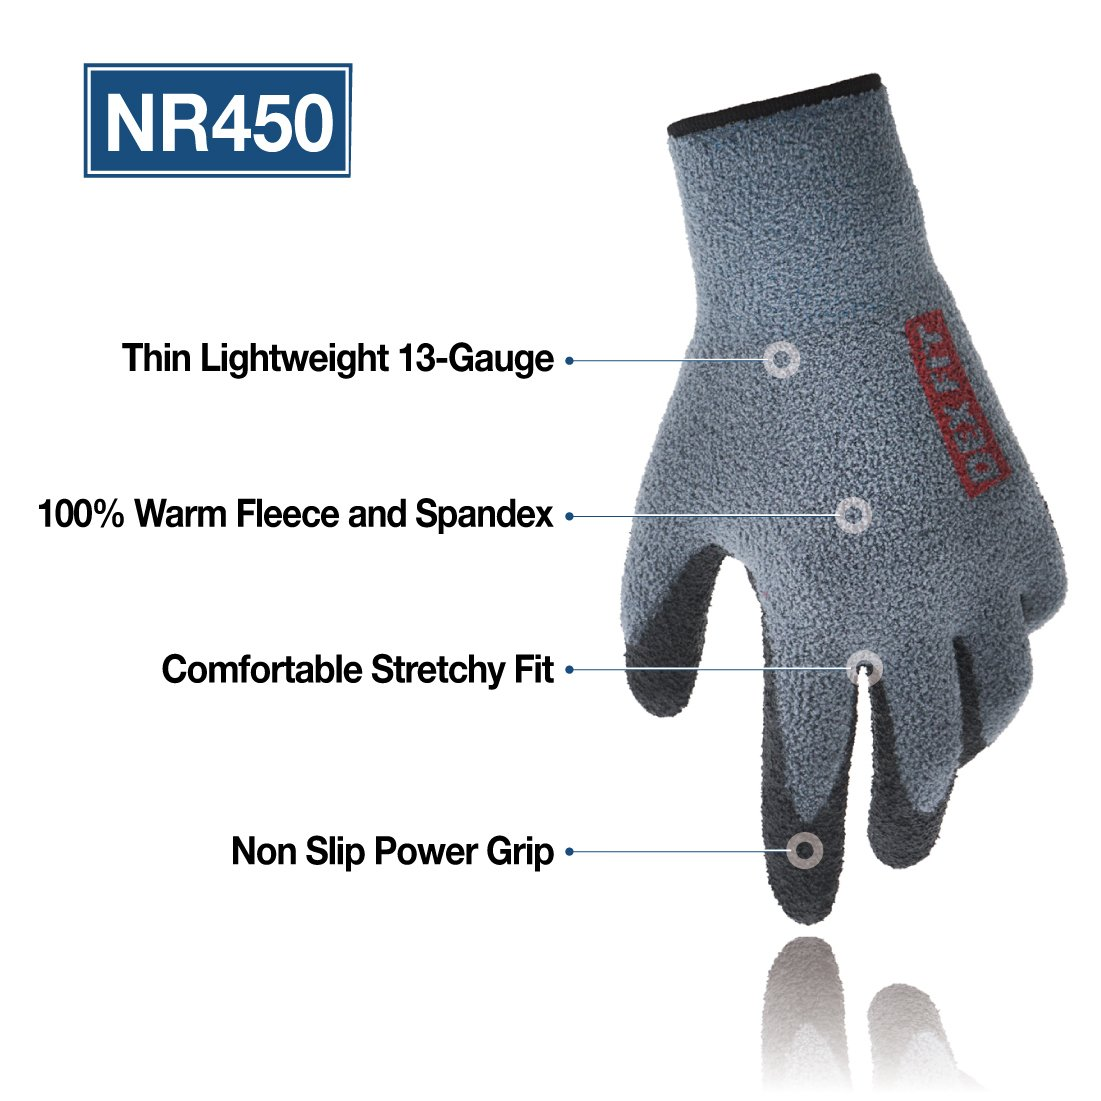 DEX FIT Warm Fleece Work Gloves NR450, Comfort Spandex Stretch Fit, Power Grip, Thin & Lightweight, Durable Nitrile Coated, Machine Washable, Grey Medium 3 Pairs Pack by DEX FIT (Image #2)